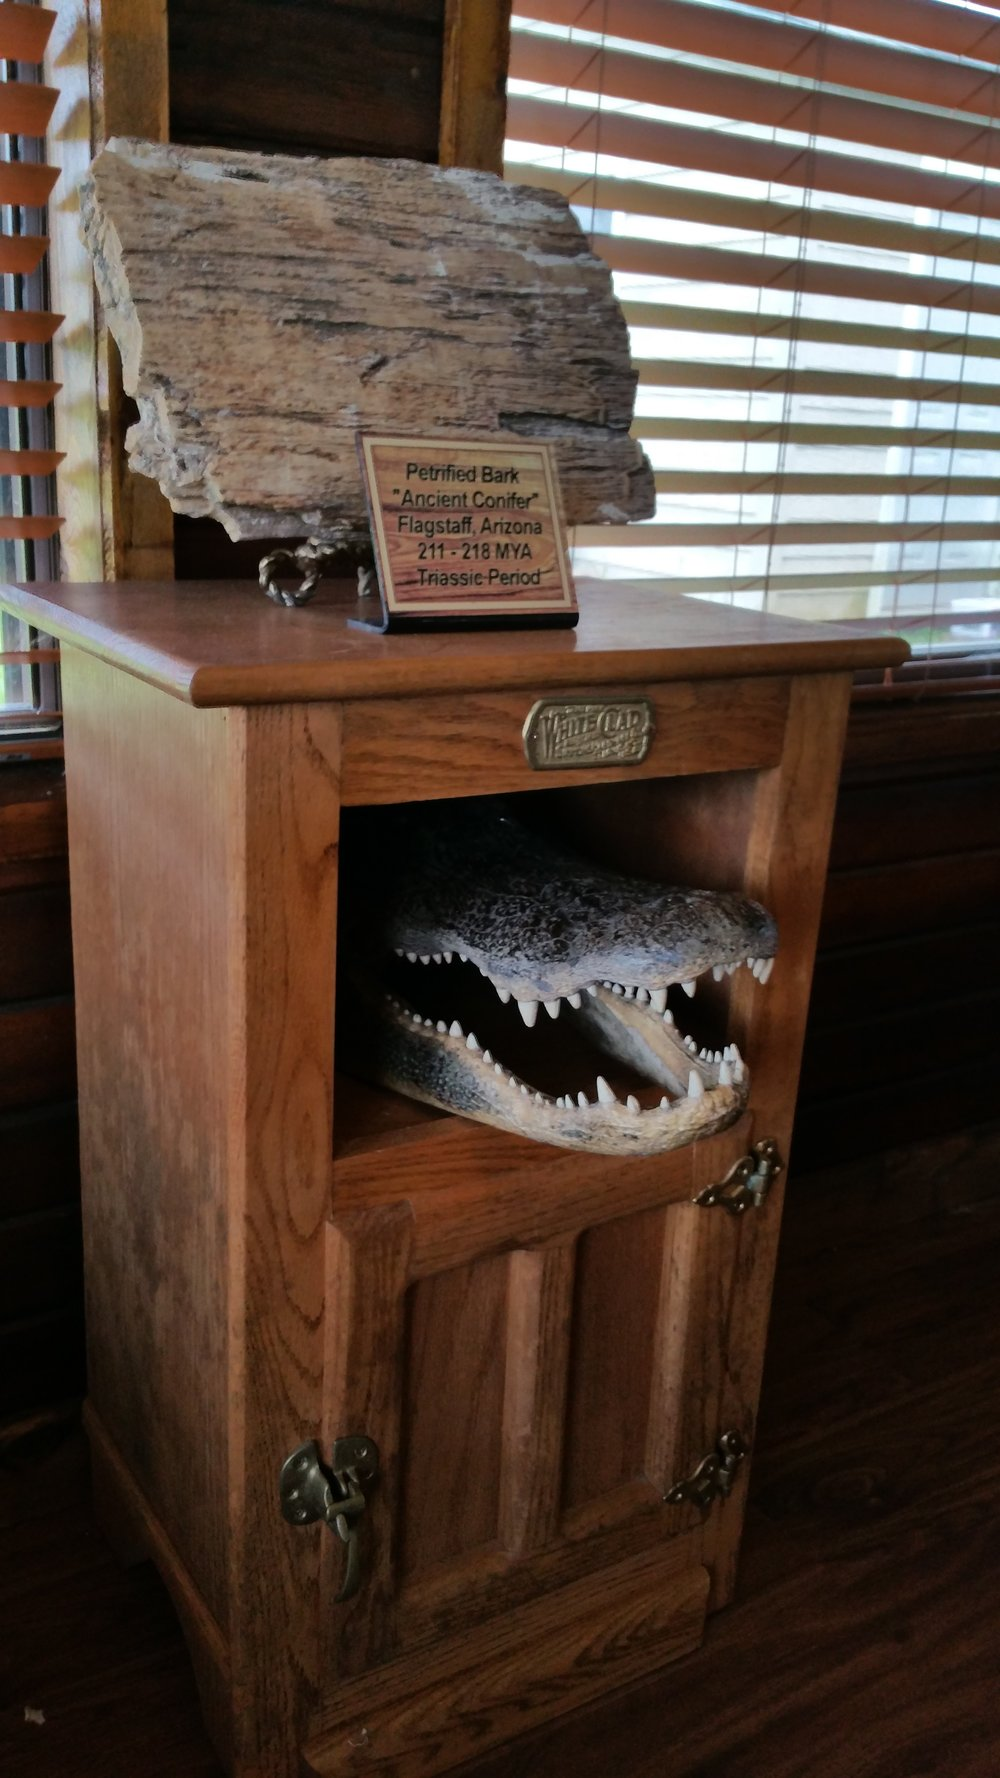 L2 alligator & petrified wood.jpg